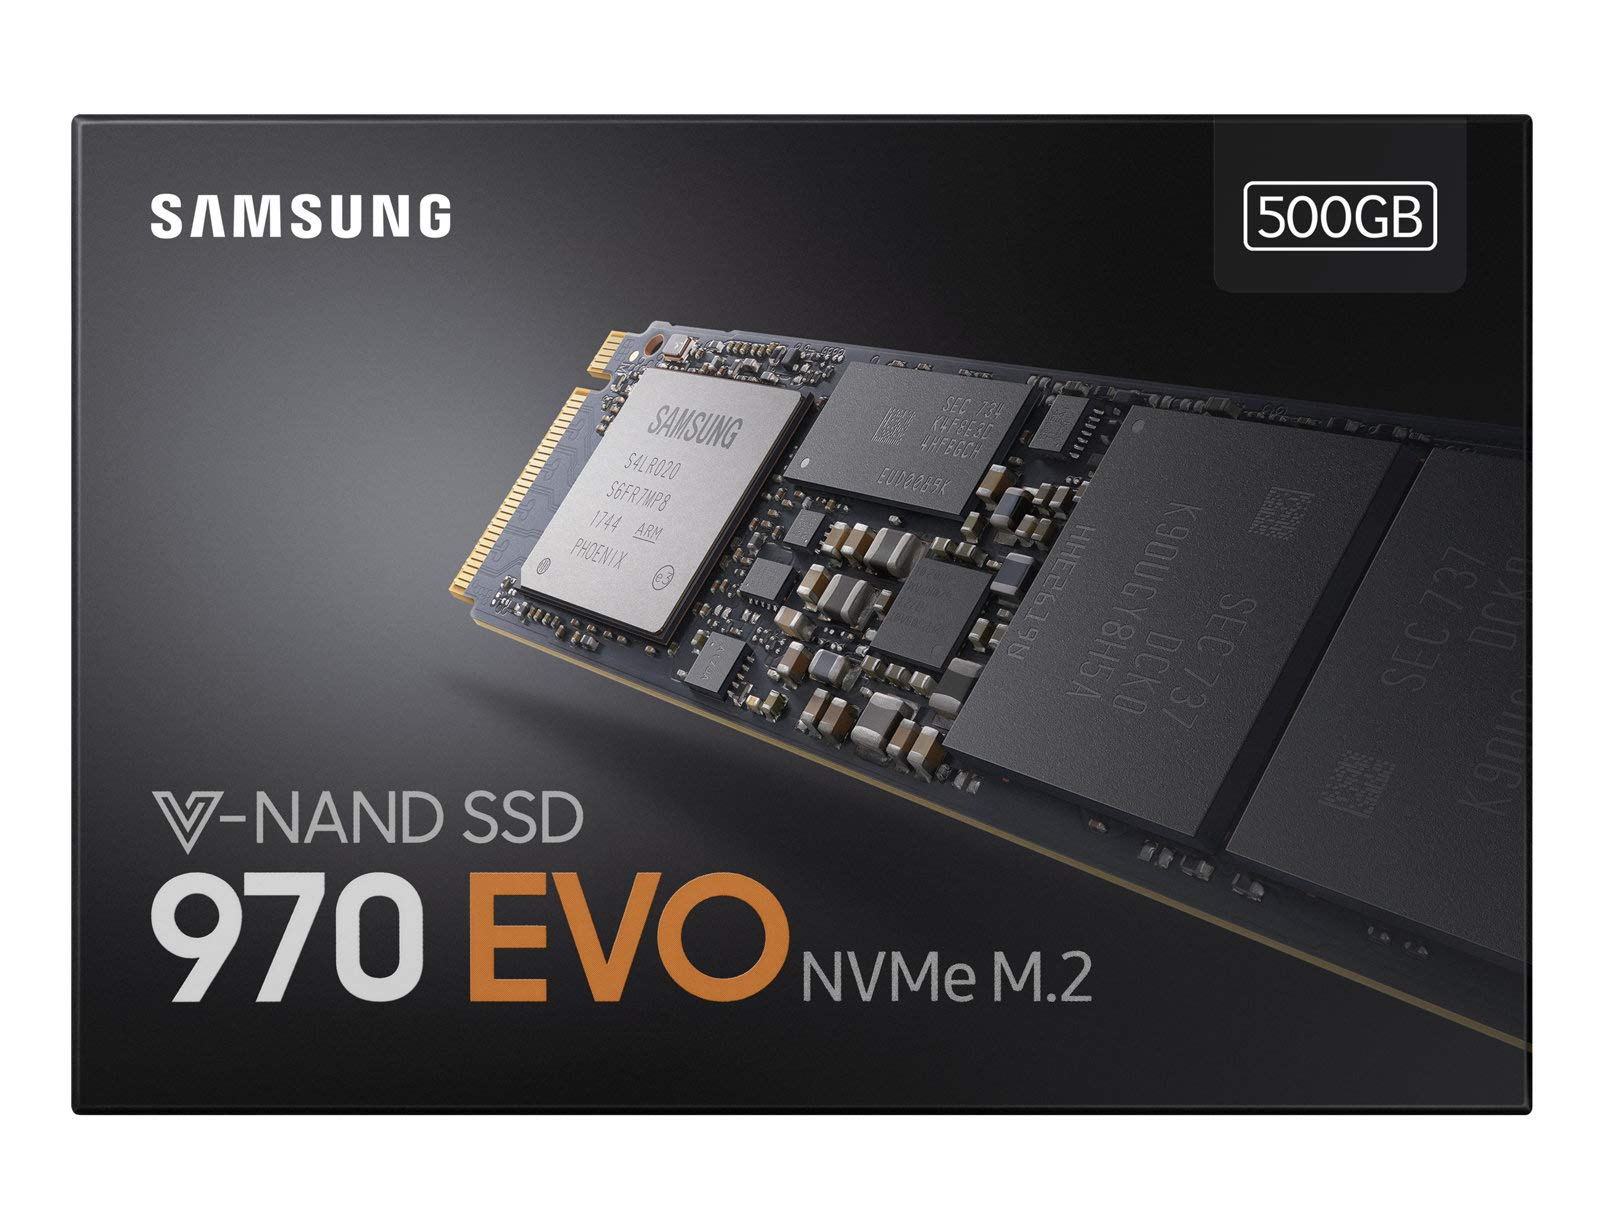 Samsung 500GB 970 EVO NVMe M2 Solid State Drive